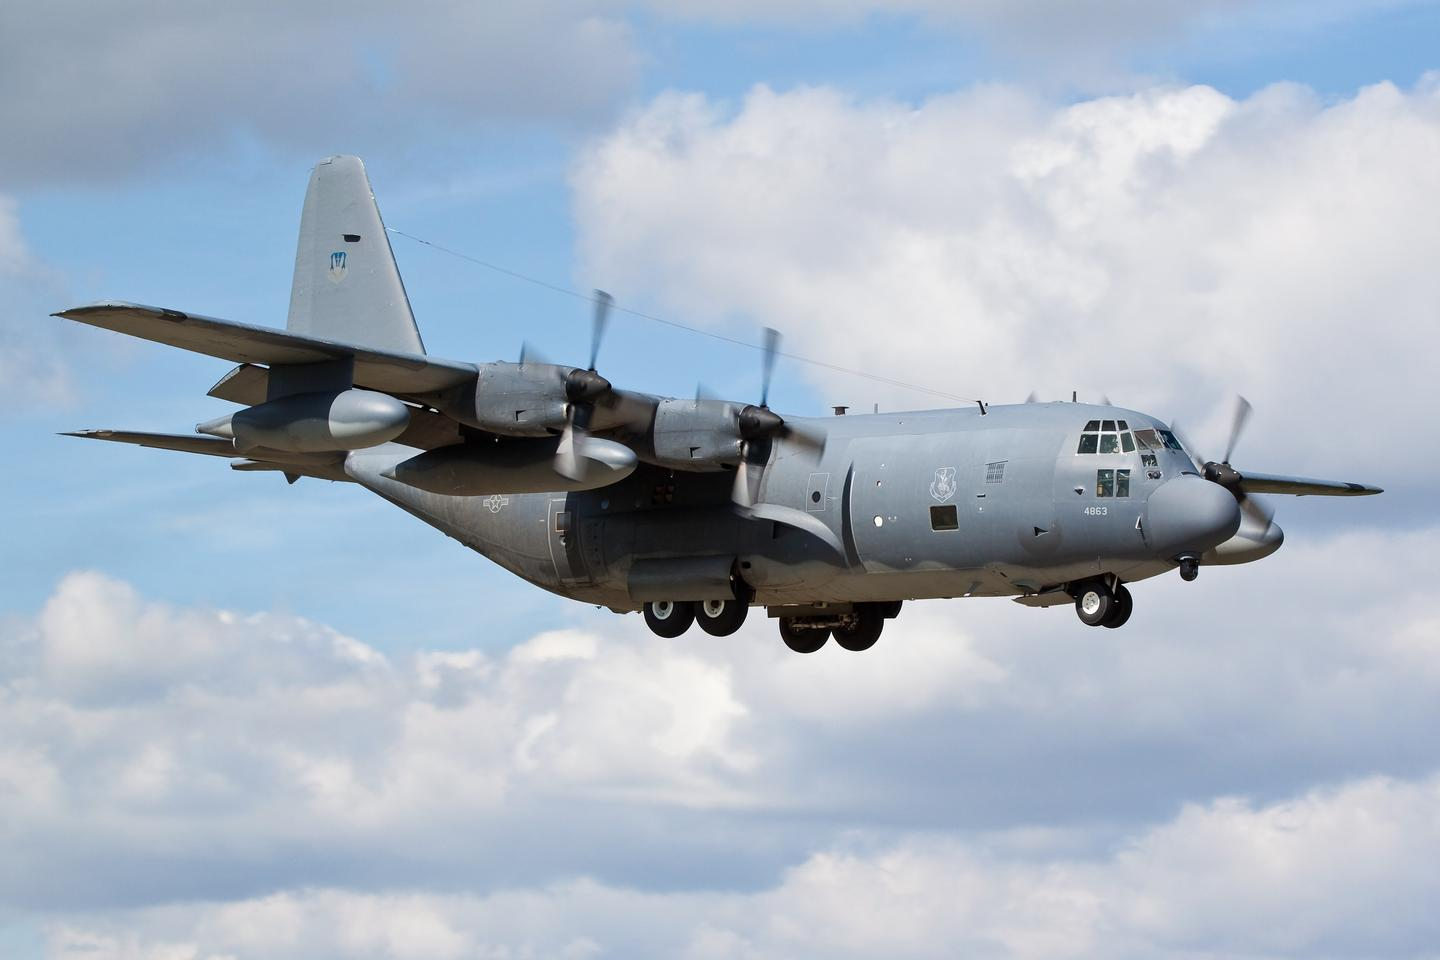 Large military aircraft, such as the C-130 transport pictured above, could be converted to launch and recover multiple UAVs (Photo: Shutterstock)